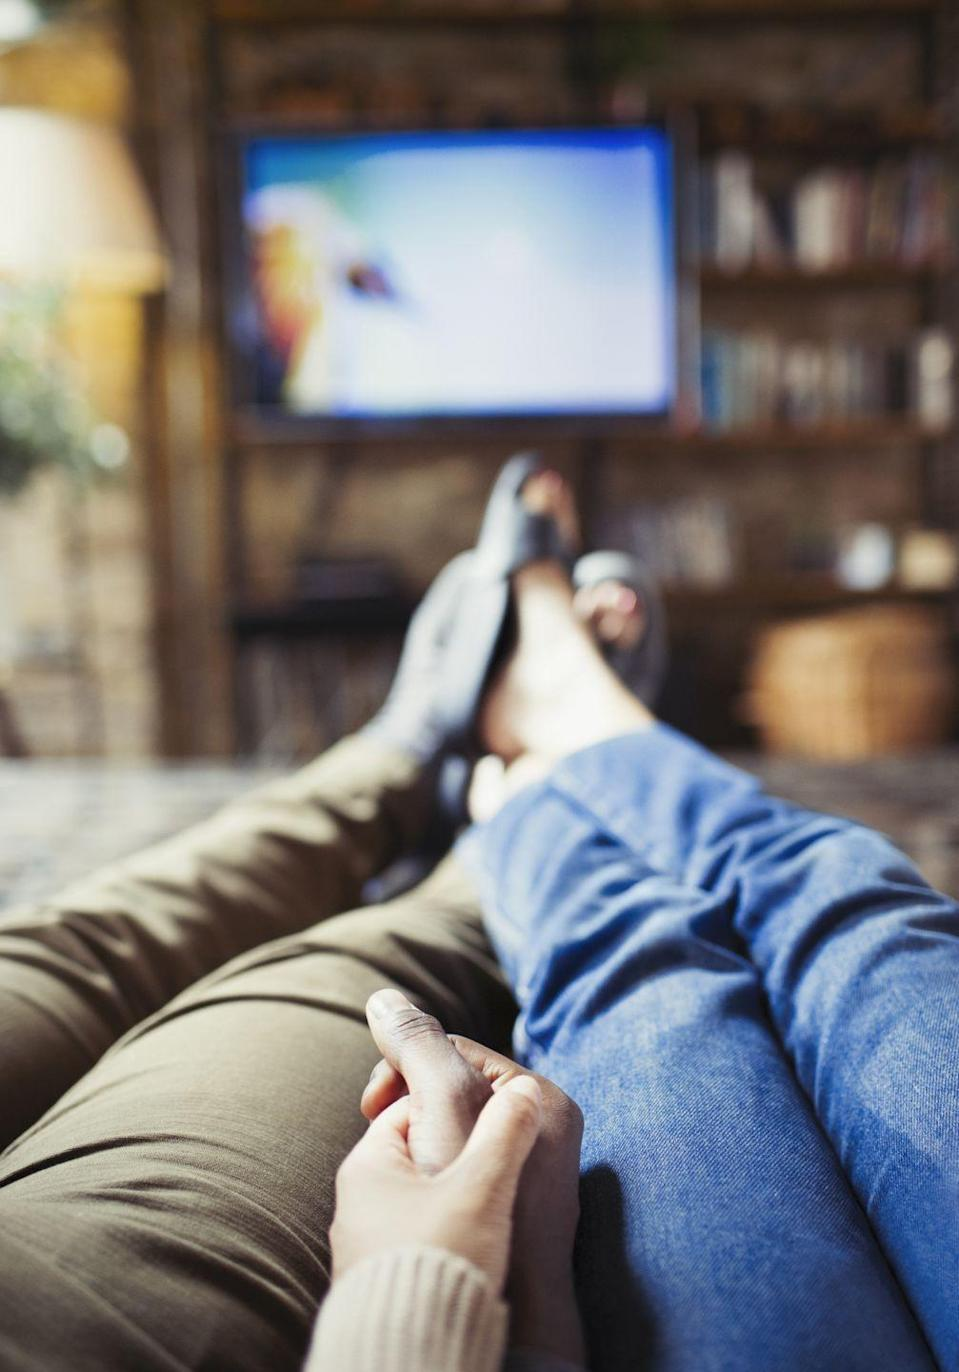 """<p>Cozy up on the couch with your significant other for a crowd-pleaser:</p><p><a href=""""http://www.netflix.com/browse/genre/1365"""" rel=""""nofollow noopener"""" target=""""_blank"""" data-ylk=""""slk:Action & Adventure: 1365"""" class=""""link rapid-noclick-resp"""">Action & Adventure: 1365</a></p><p><a href=""""http://www.netflix.com/browse/genre/43040"""" rel=""""nofollow noopener"""" target=""""_blank"""" data-ylk=""""slk:Action Comedies: 43040"""" class=""""link rapid-noclick-resp"""">Action Comedies: 43040</a></p><p><a href=""""http://www.netflix.com/browse/genre/3179"""" rel=""""nofollow noopener"""" target=""""_blank"""" data-ylk=""""slk:Biographical Dramas: 3179"""" class=""""link rapid-noclick-resp"""">Biographical Dramas: 3179</a></p> <p><a href=""""http://www.netflix.com/browse/genre/10757"""" rel=""""nofollow noopener"""" target=""""_blank"""" data-ylk=""""slk:British Movies: 10757"""" class=""""link rapid-noclick-resp"""">British Movies: 10757</a> </p><p><a href=""""http://www.netflix.com/browse/genre/52117"""" rel=""""nofollow noopener"""" target=""""_blank"""" data-ylk=""""slk:British TV Shows: 52117"""" class=""""link rapid-noclick-resp"""">British TV Shows: 52117</a></p><p><a href=""""http://www.netflix.com/browse/genre/5763"""" rel=""""nofollow noopener"""" target=""""_blank"""" data-ylk=""""slk:Dramas: 5763"""" class=""""link rapid-noclick-resp"""">Dramas: 5763</a></p><p><a href=""""http://www.netflix.com/browse/genre/4961"""" rel=""""nofollow noopener"""" target=""""_blank"""" data-ylk=""""slk:Dramas based on Books: 4961"""" class=""""link rapid-noclick-resp"""">Dramas based on Books: 4961</a> </p><p><a href=""""http://www.netflix.com/browse/genre/3653"""" rel=""""nofollow noopener"""" target=""""_blank"""" data-ylk=""""slk:Dramas based on Real Life: 3653"""" class=""""link rapid-noclick-resp"""">Dramas based on Real Life: 3653</a></p><p><a href=""""http://www.netflix.com/browse/genre/9994"""" rel=""""nofollow noopener"""" target=""""_blank"""" data-ylk=""""slk:Mysteries: 9994"""" class=""""link rapid-noclick-resp"""">Mysteries: 9994</a></p><p><a href=""""https://www.netflix.com/browse/genre/12123"""" rel=""""nofollow noopener"""" target=""""_blank"""" data-ylk=""""slk:Period Pieces: 12123"""" class=""""link rapid-noclick-resp"""">Peri"""